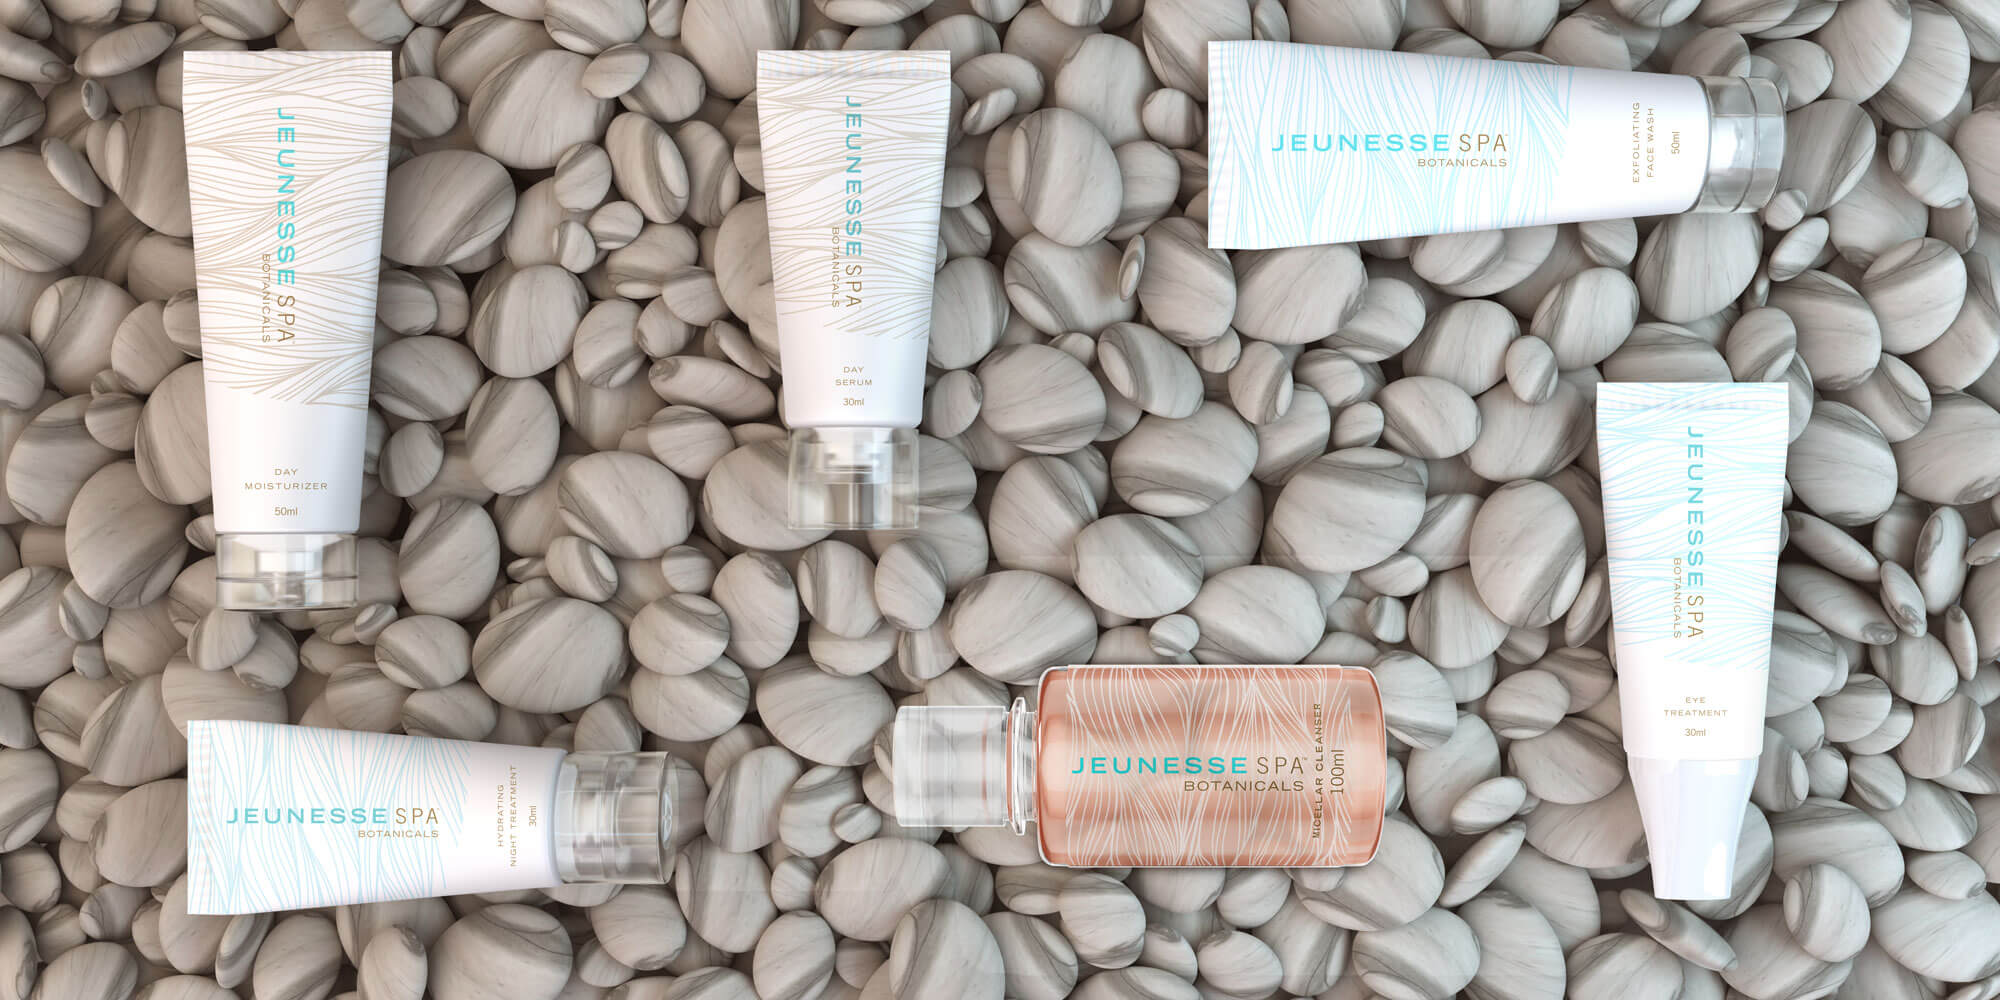 Jeunesse spa botanicals on rocks